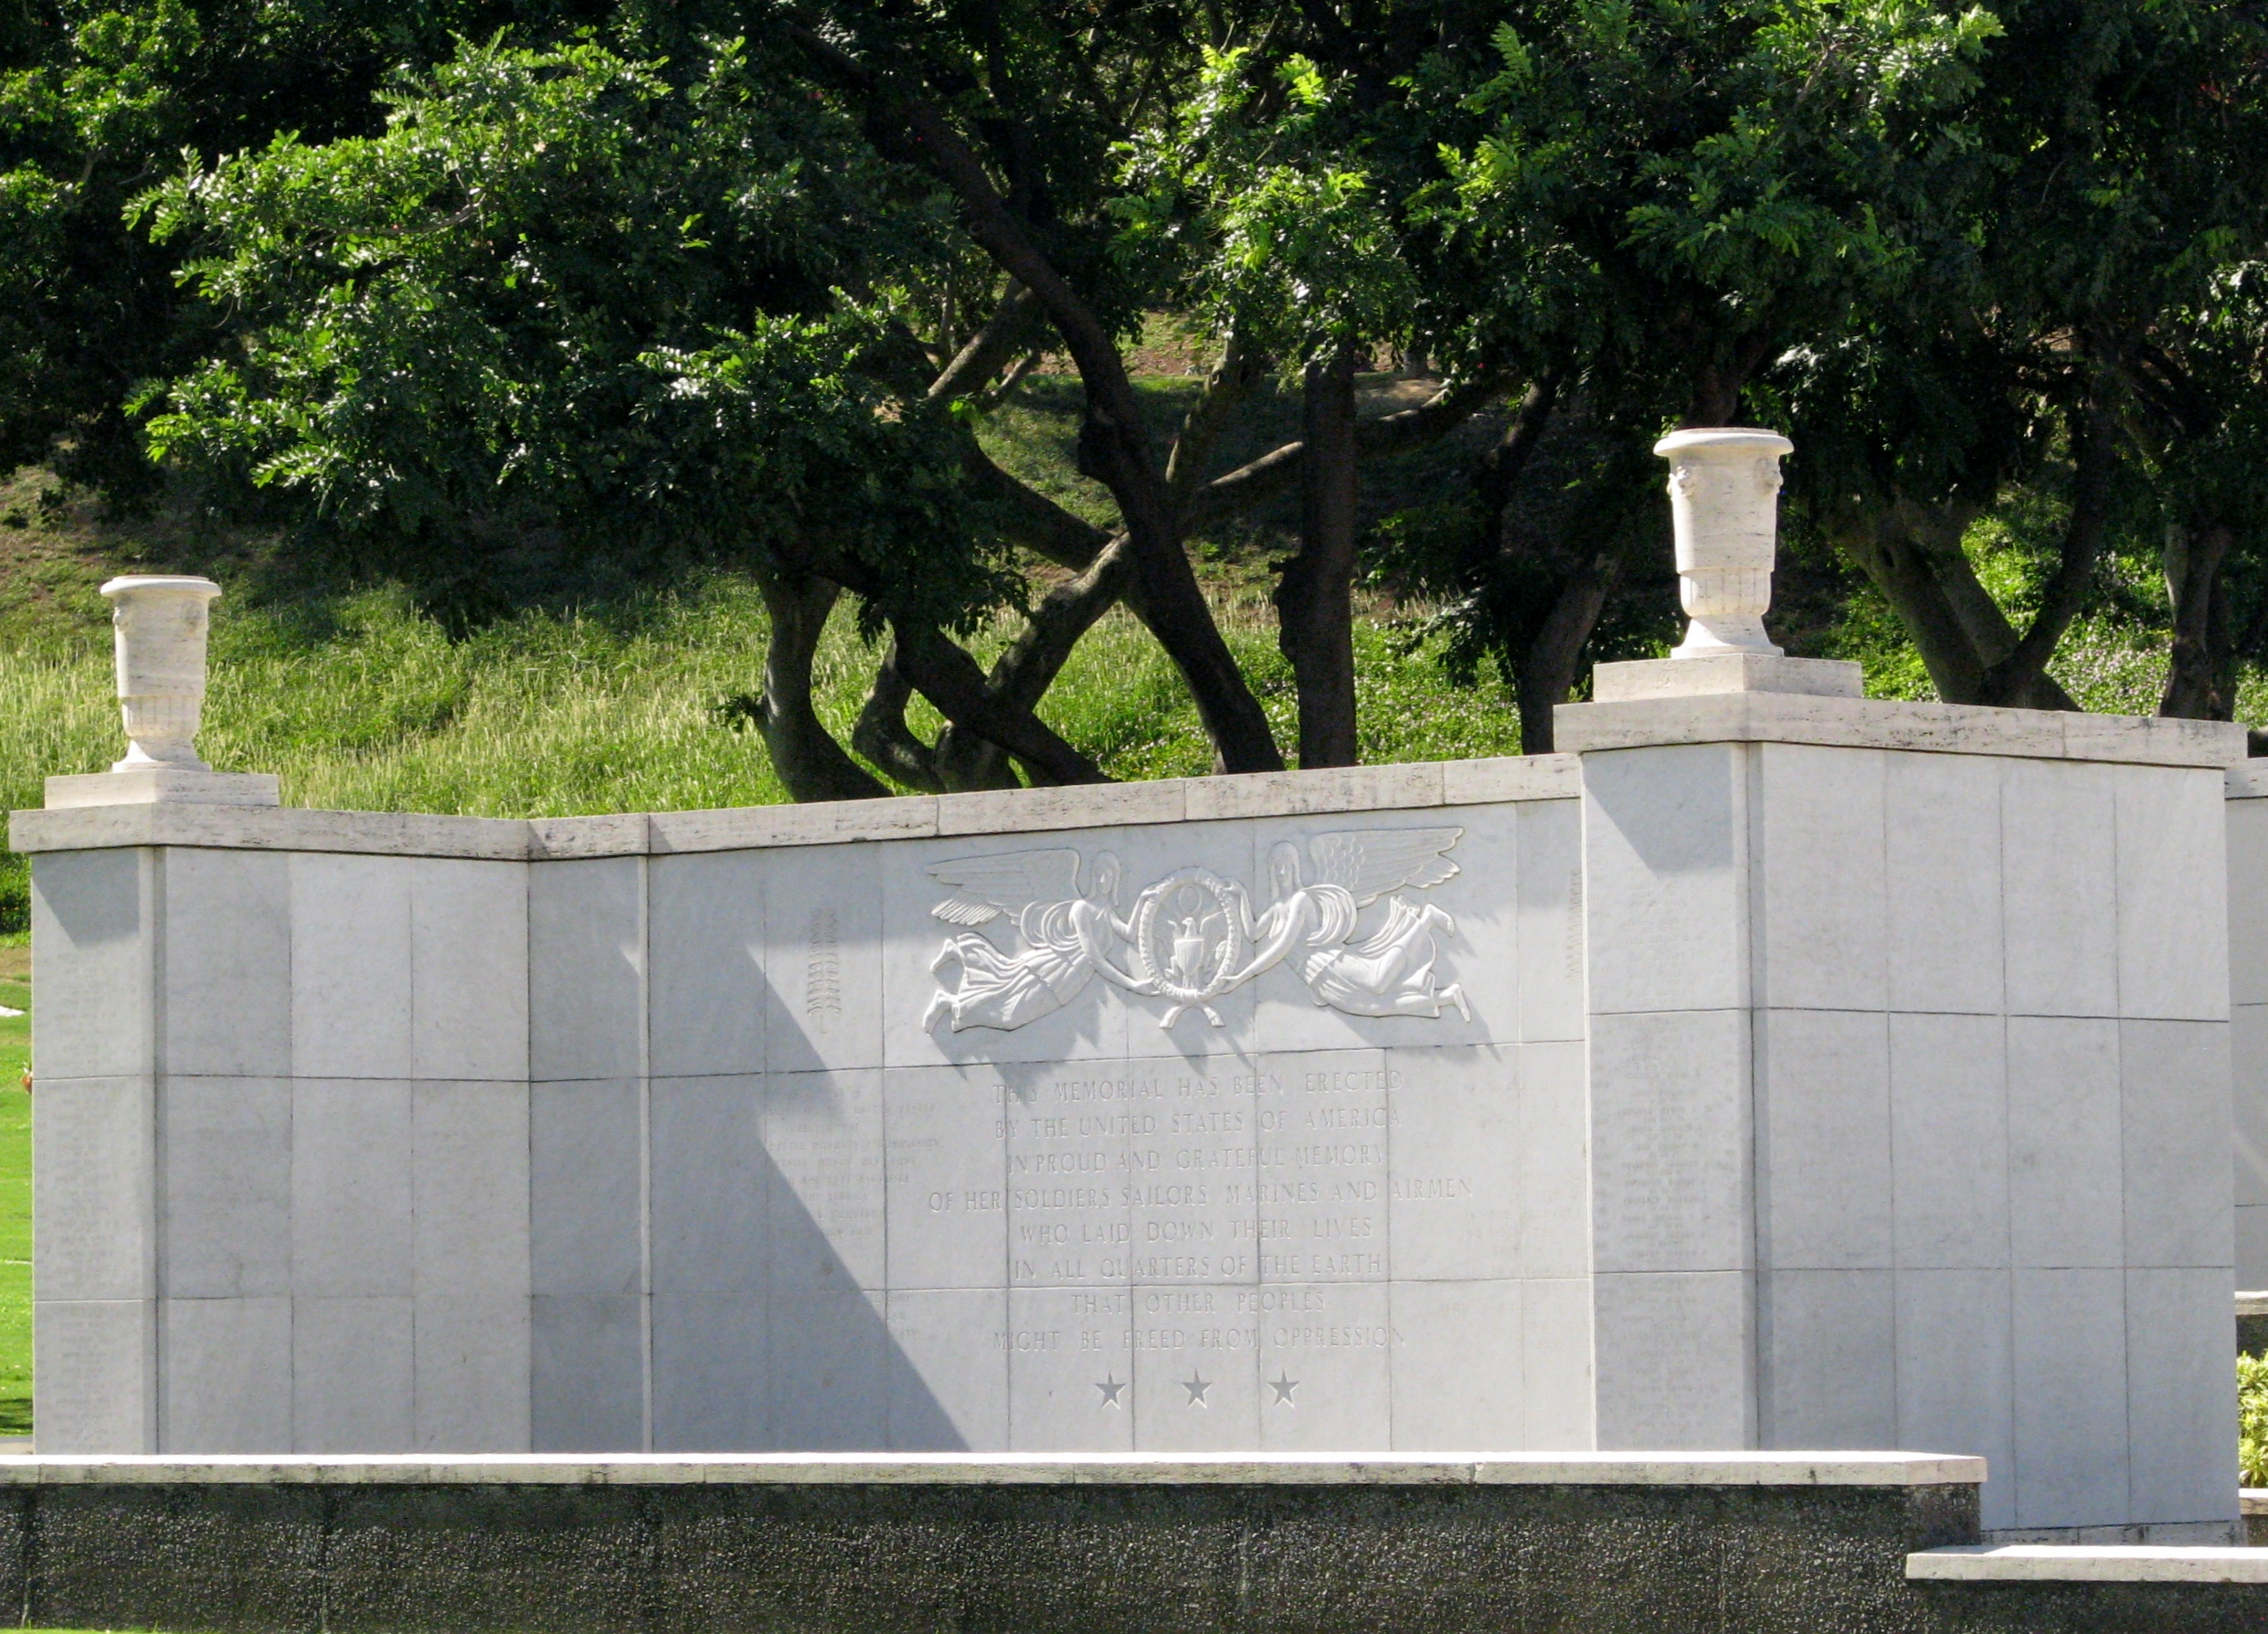 The names of 28,788 military personnel who are missing in action or were lost or buried at sea in the Pacific during these conflicts are listed on marble slabs in ten Courts of the Missing which flank the Memorial's grand stone staircase.